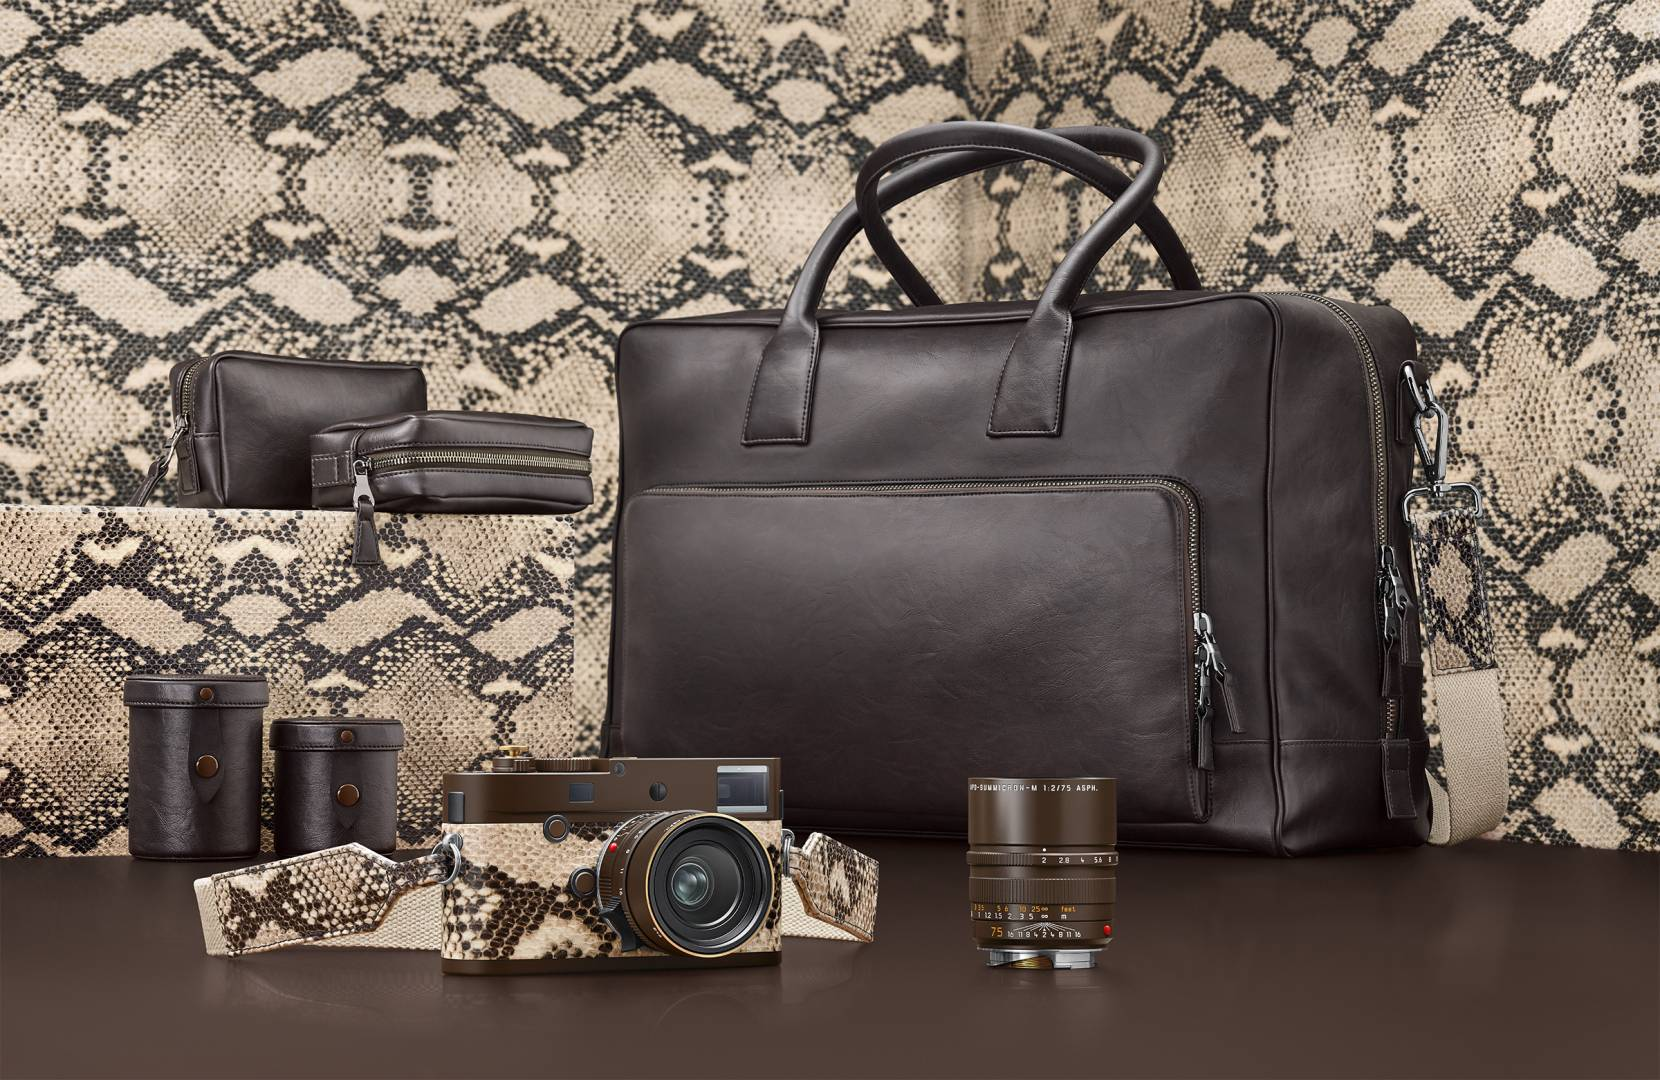 It's the complete works and not a bit of real animal skin in sight. The Kravitz Drifter Leica Monochrom edition costs £20,500.